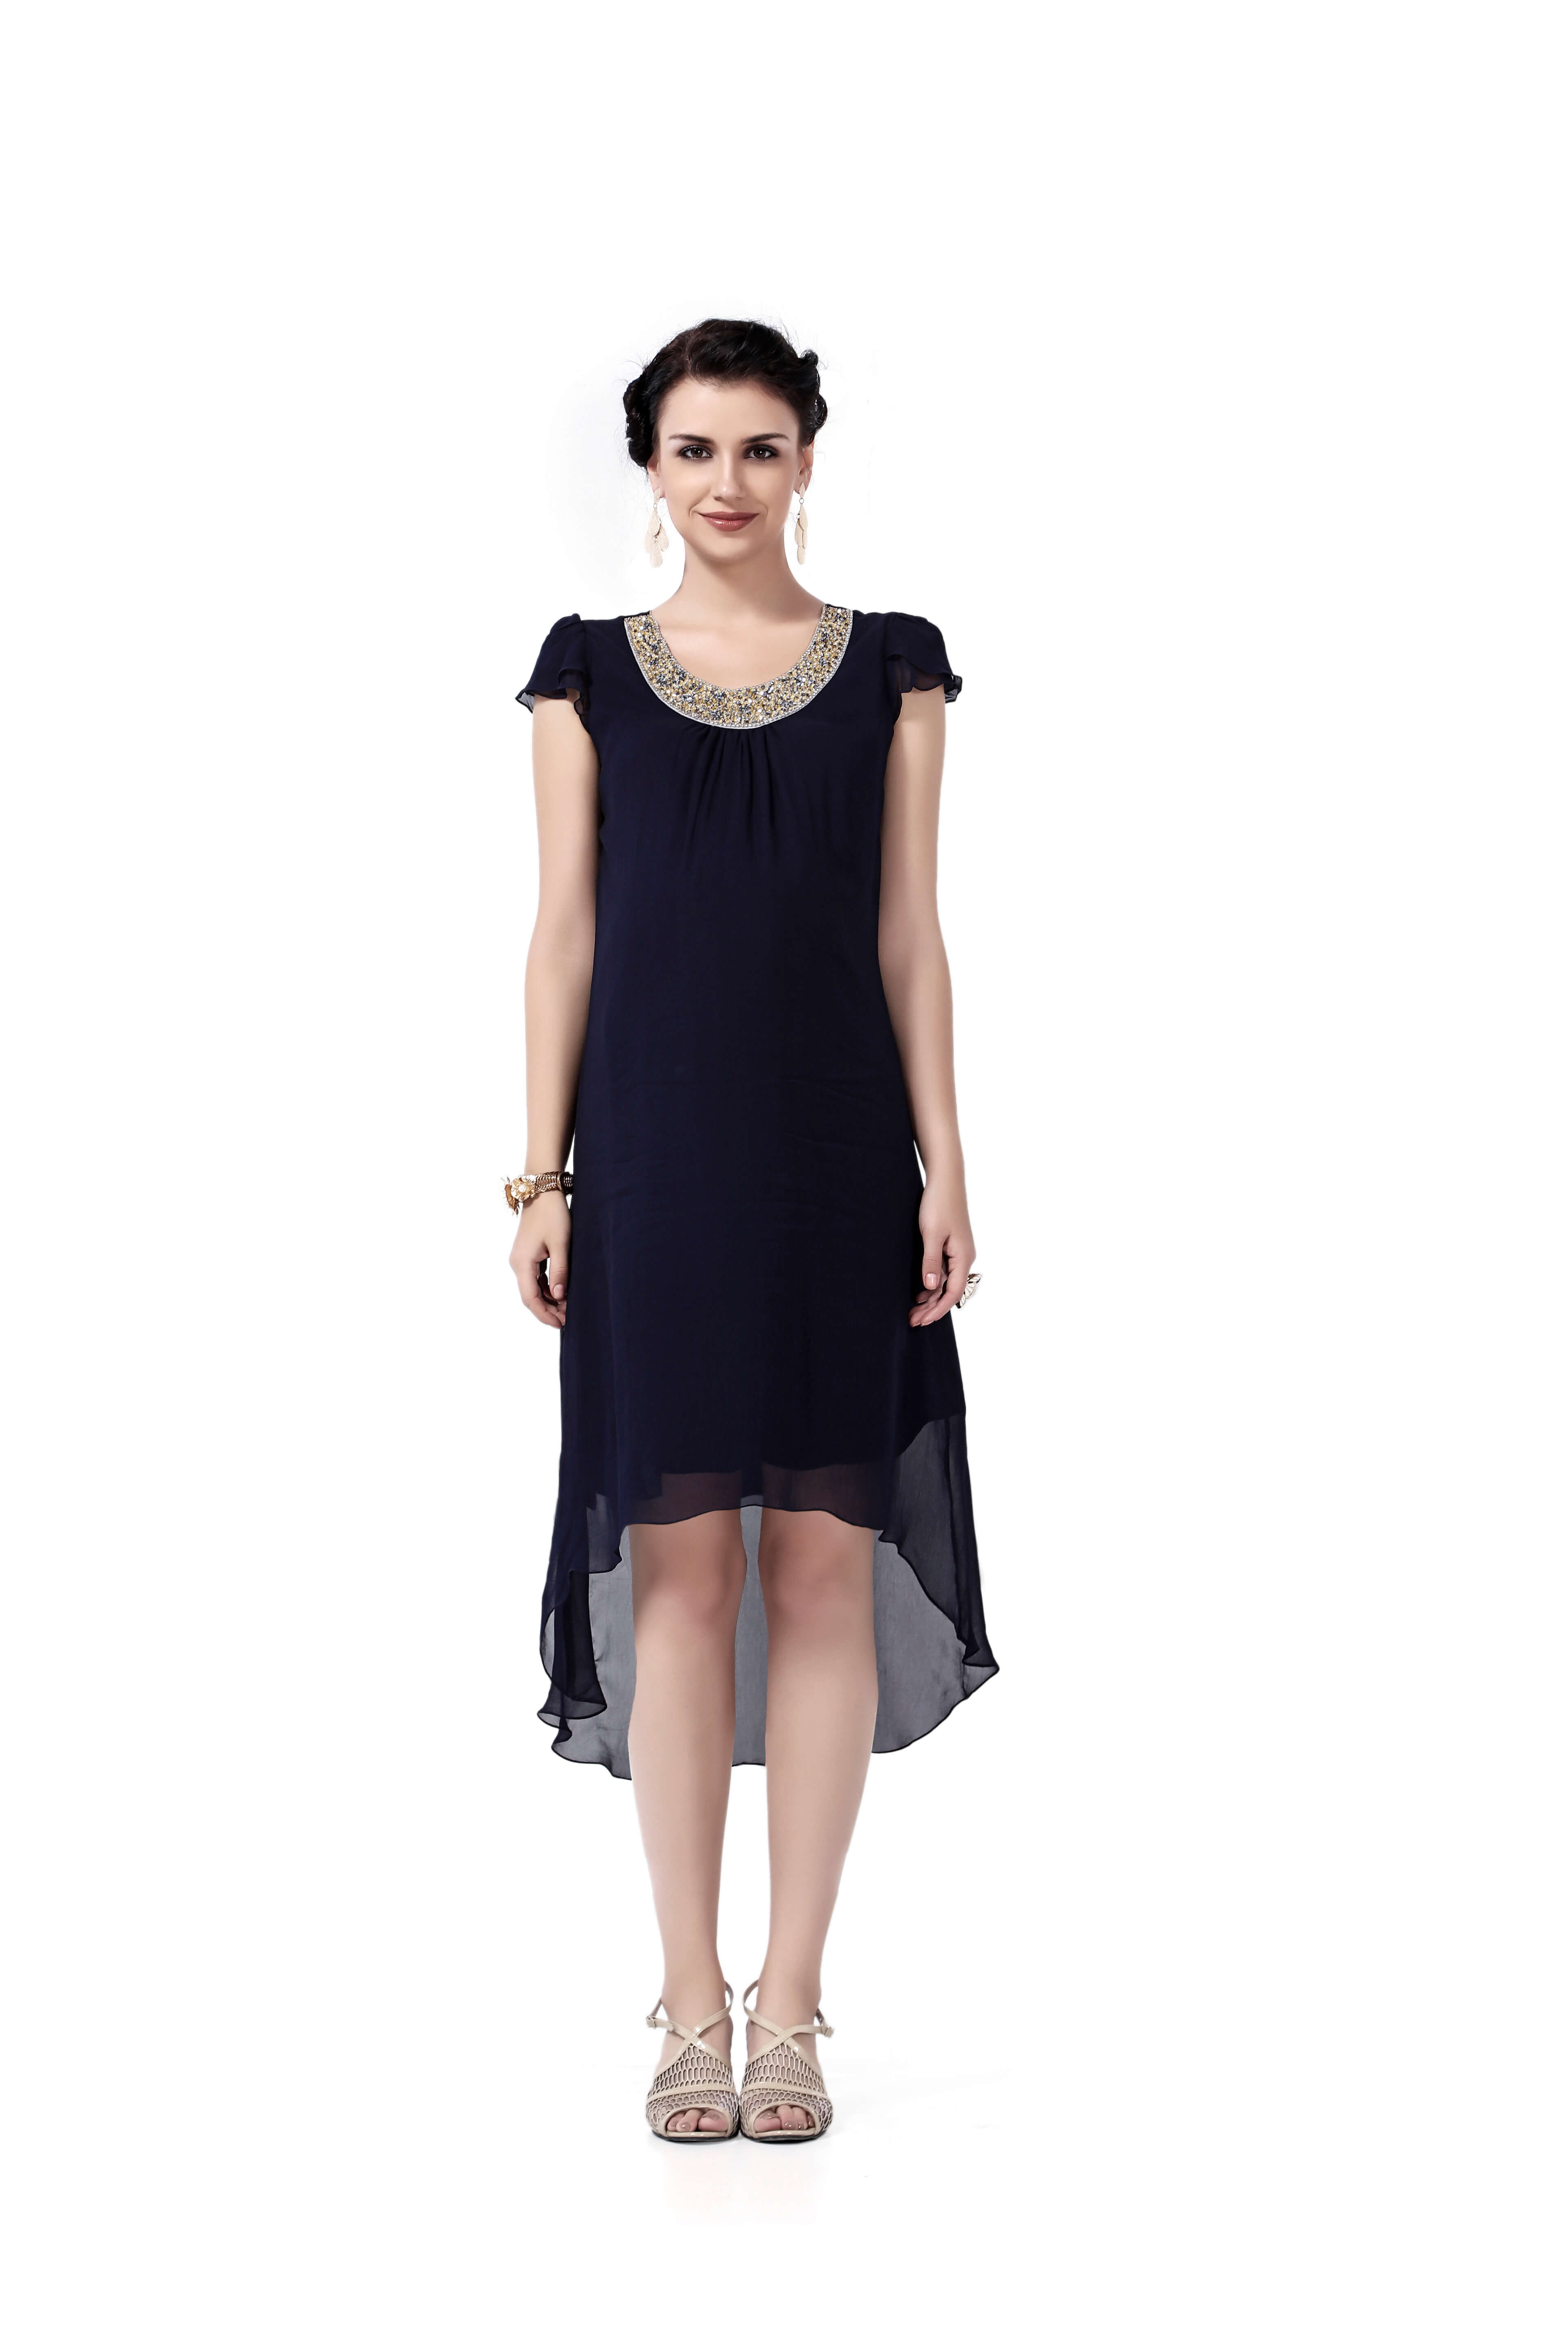 af5bceea3a540 House of Napius - Embellished Maternity Dress - Navy Blue